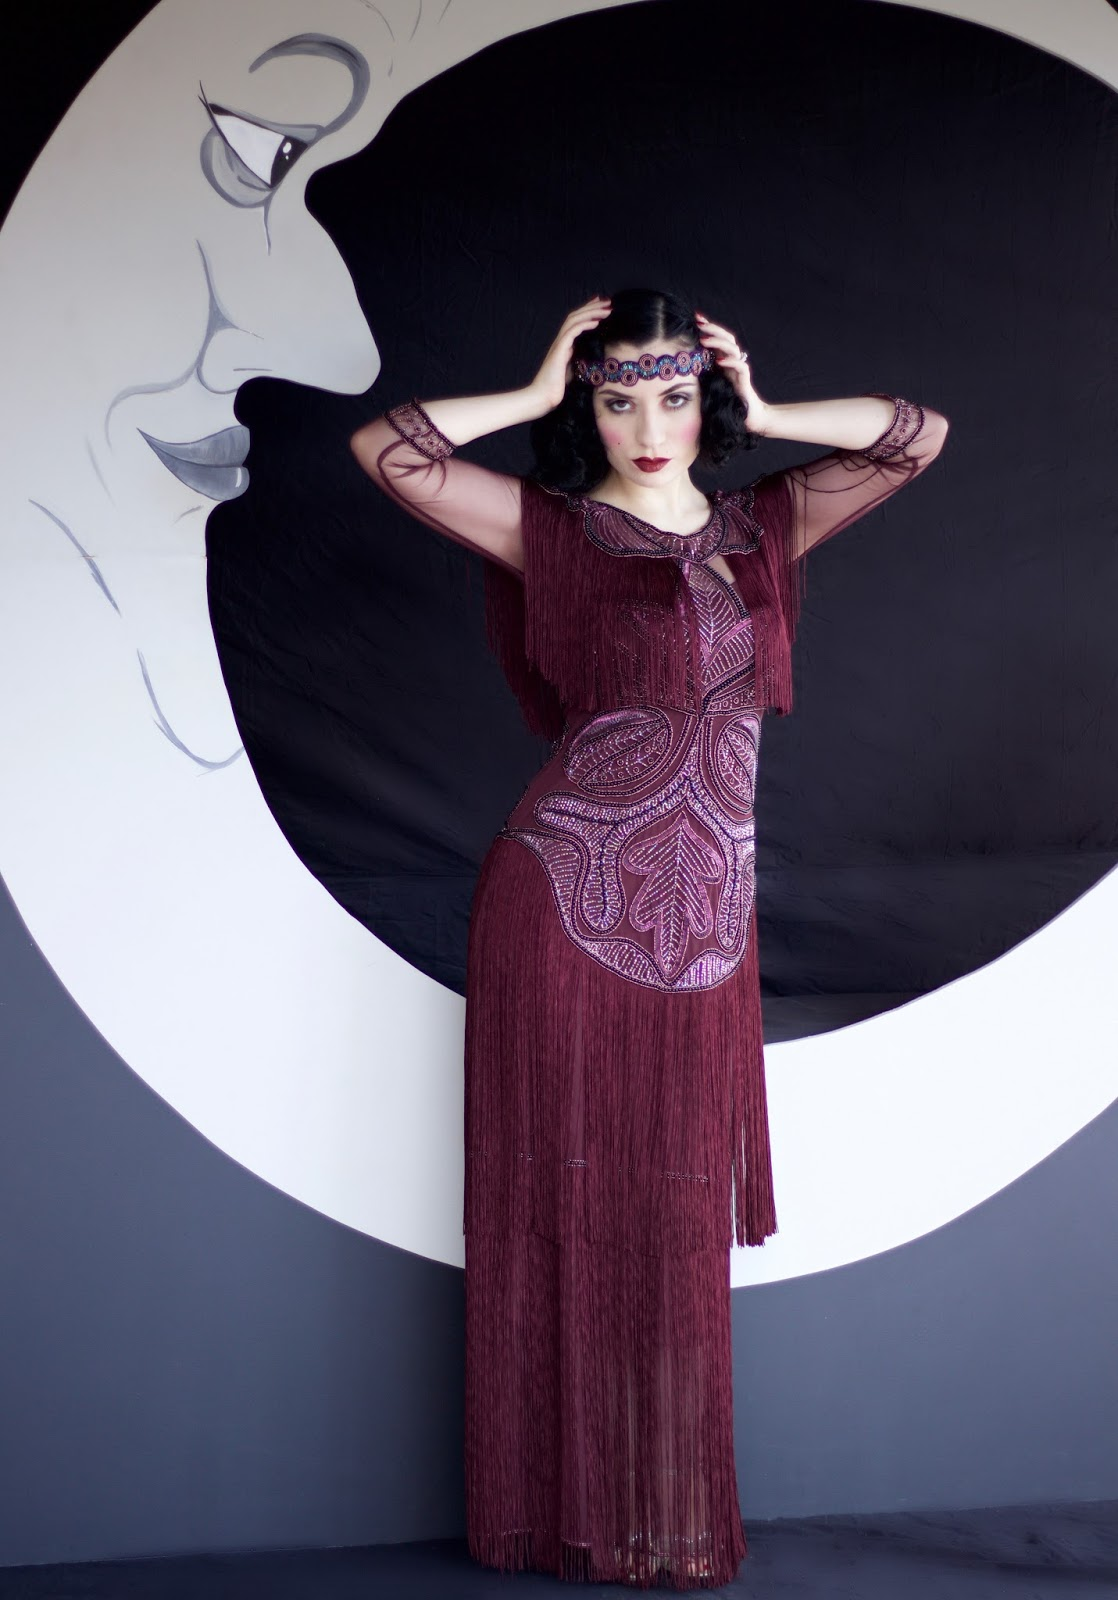 aea472fc695a7c ... accessory for an iconic flapper girl look